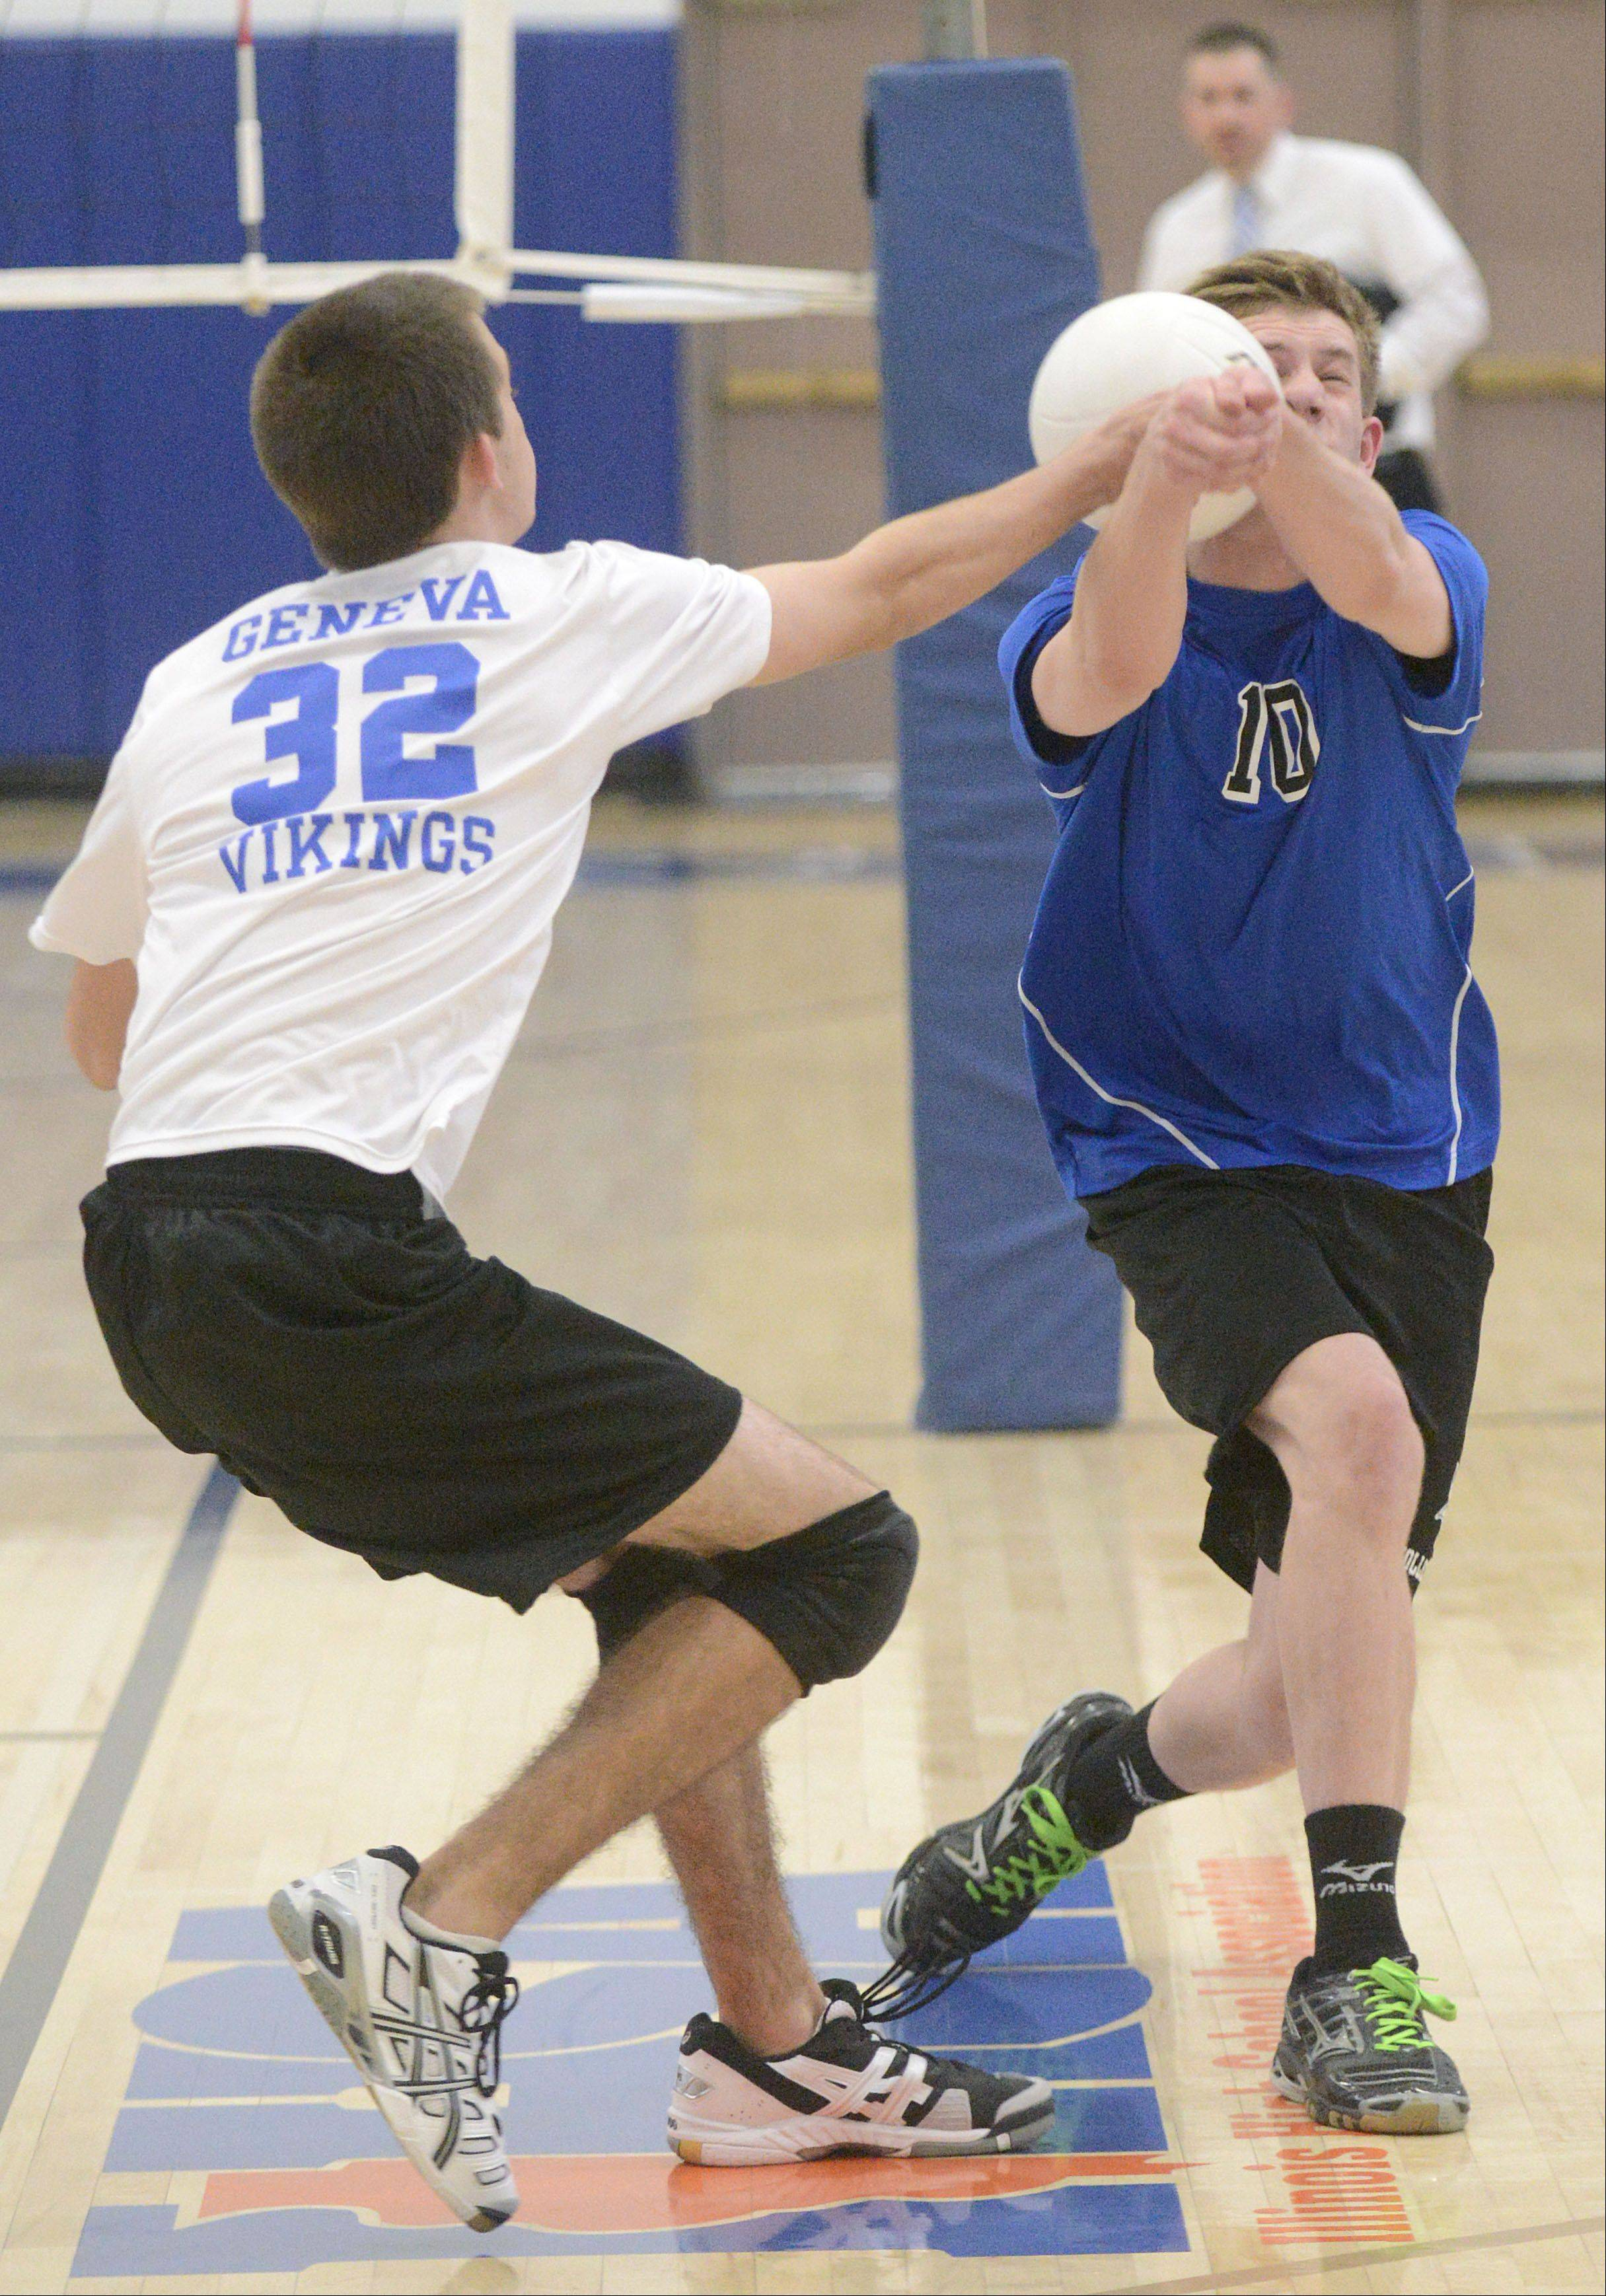 Geneva's Brandon Navigato and Nathan Jesko collide in the first match on Tuesday, May 7.